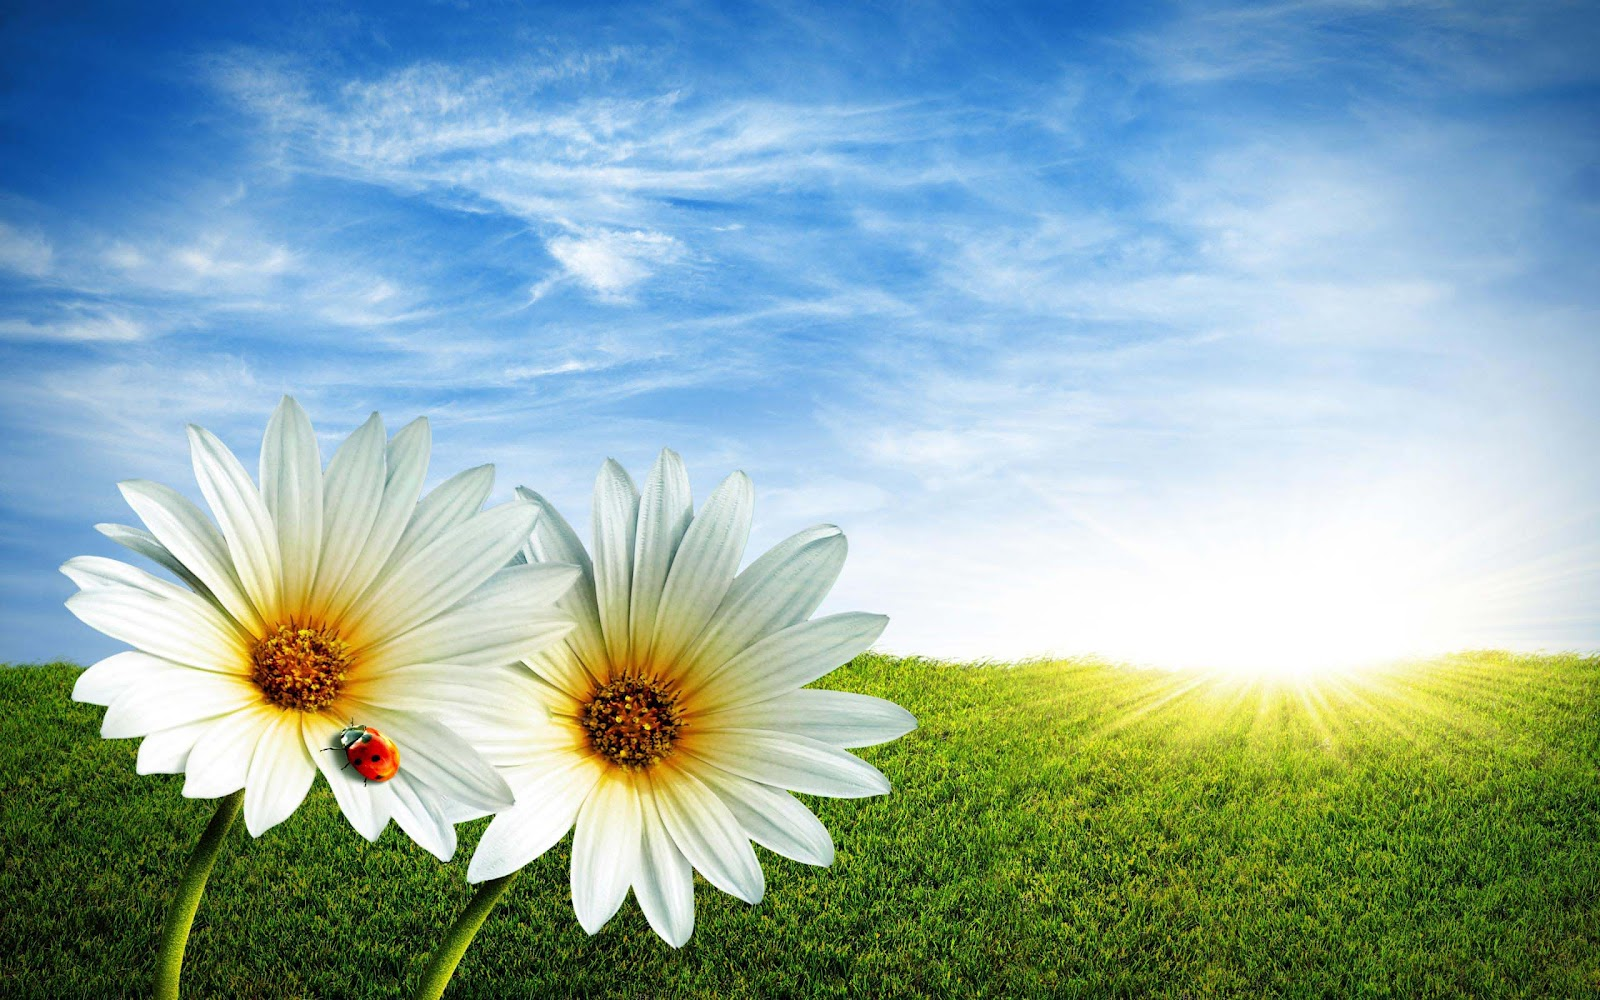 Backgrounds spring wallpapers top best hd wallpapers for - Free computer backgrounds for spring ...